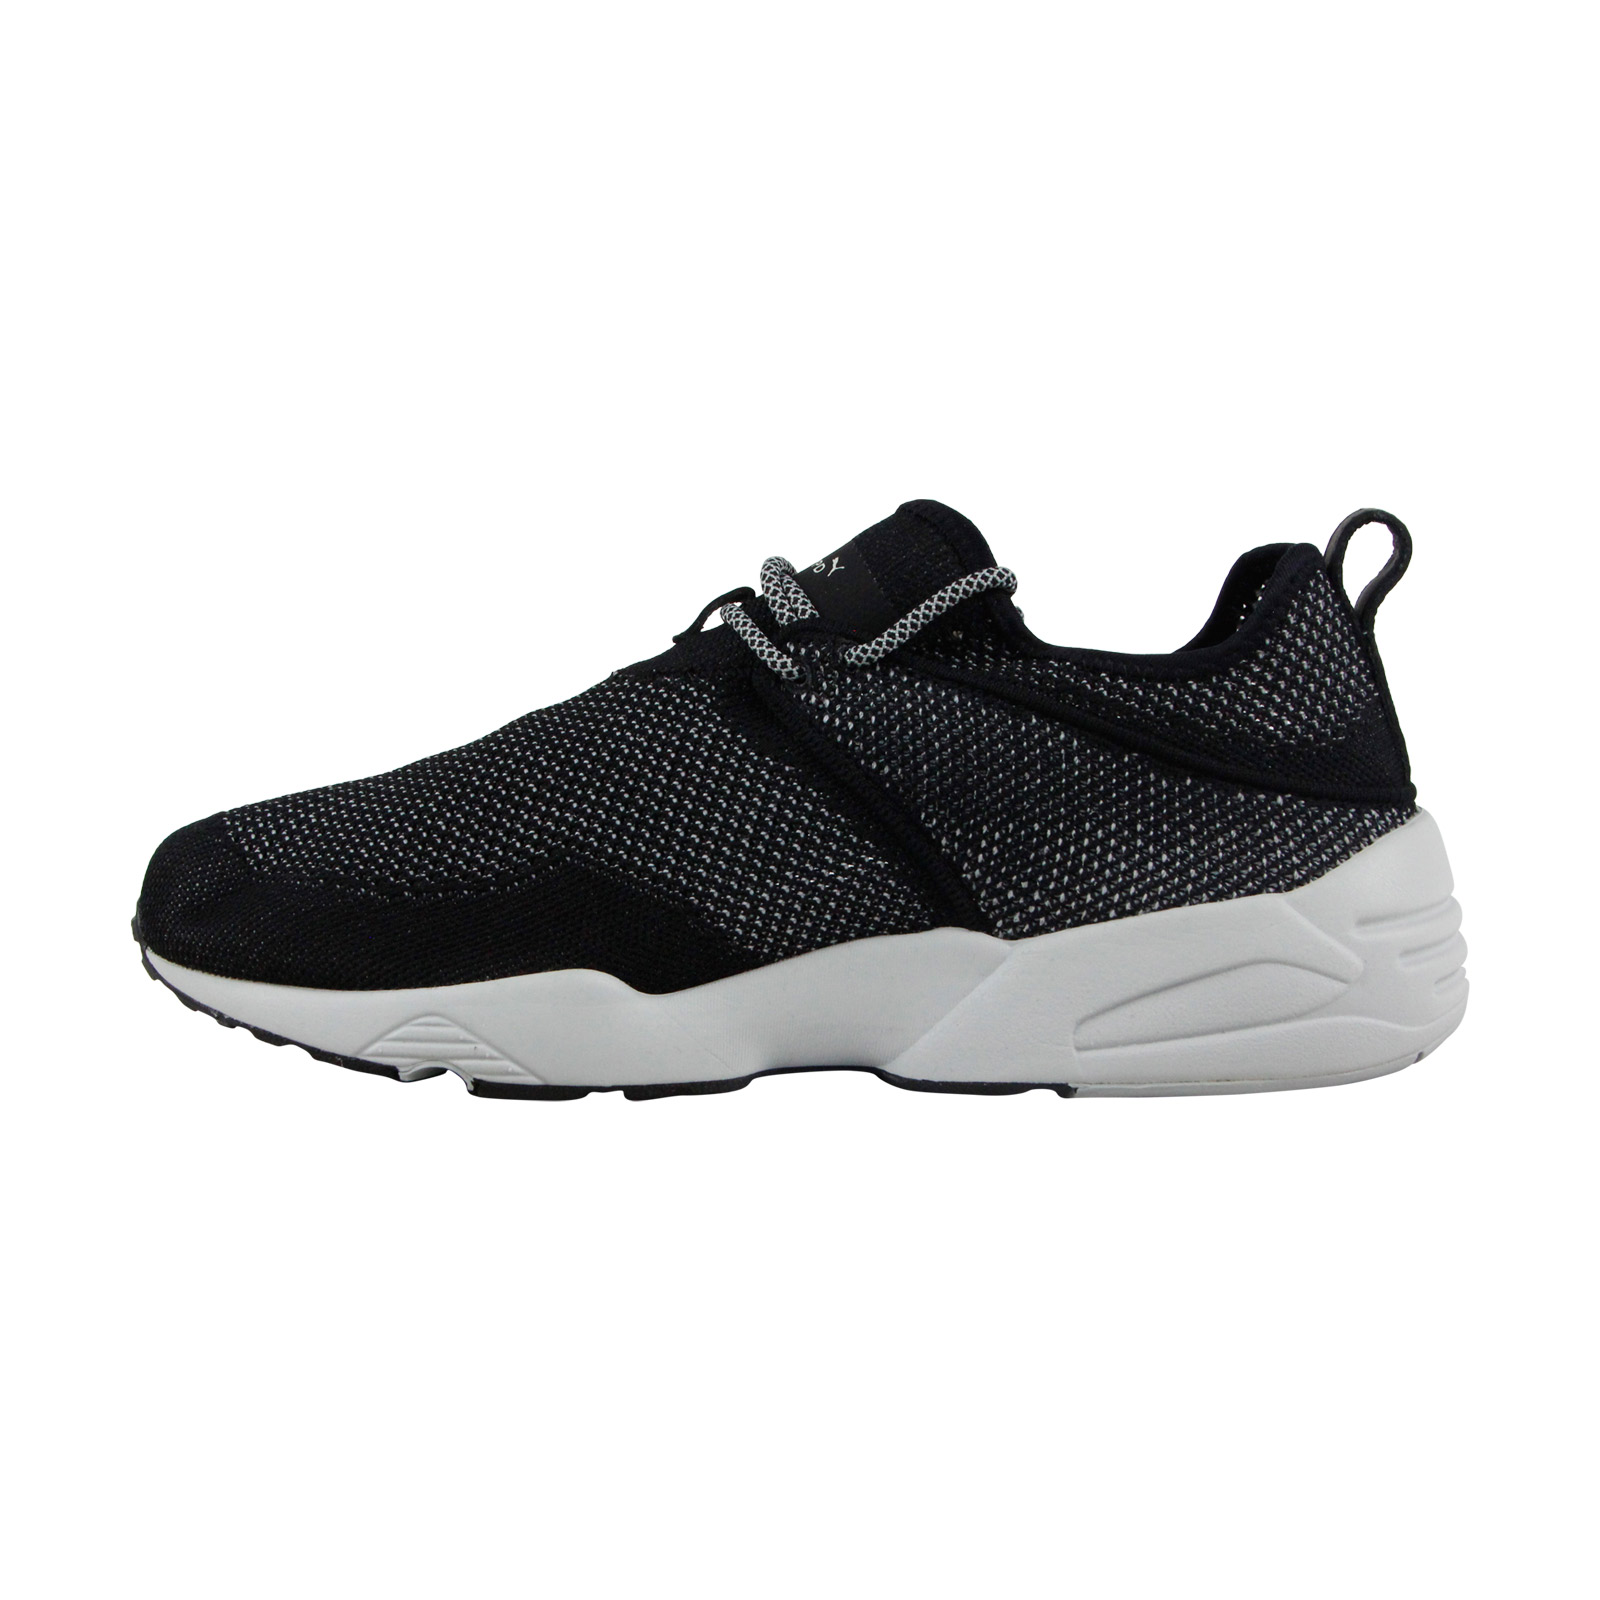 Puma X Stampd Trinomic Woven Mens Black Textile Sneakers Shoes